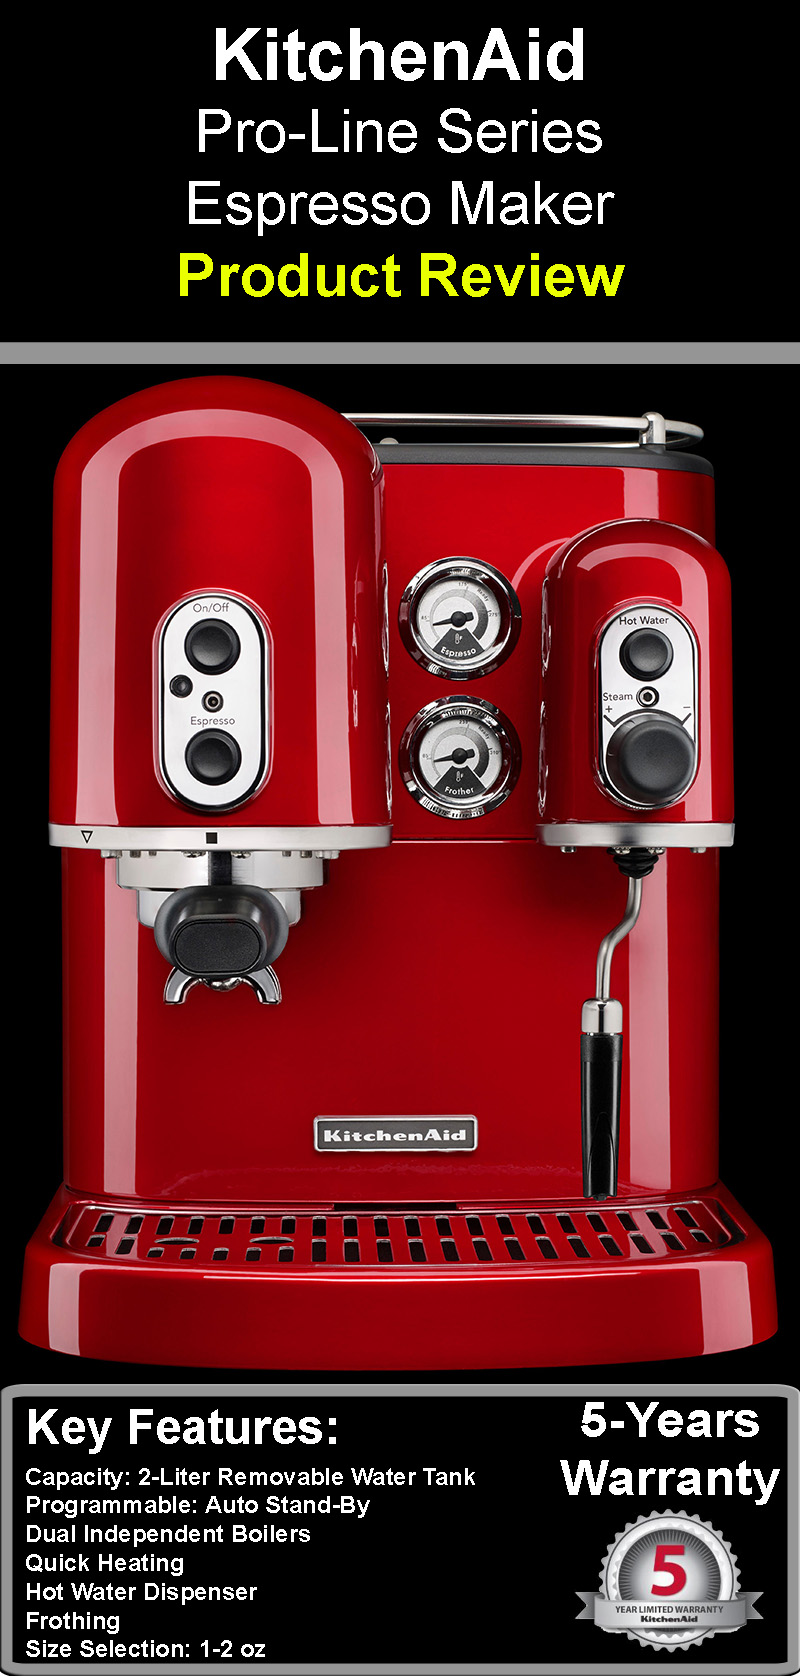 Kitchen Aid Pro Line Series Espresso Maker: Product Review